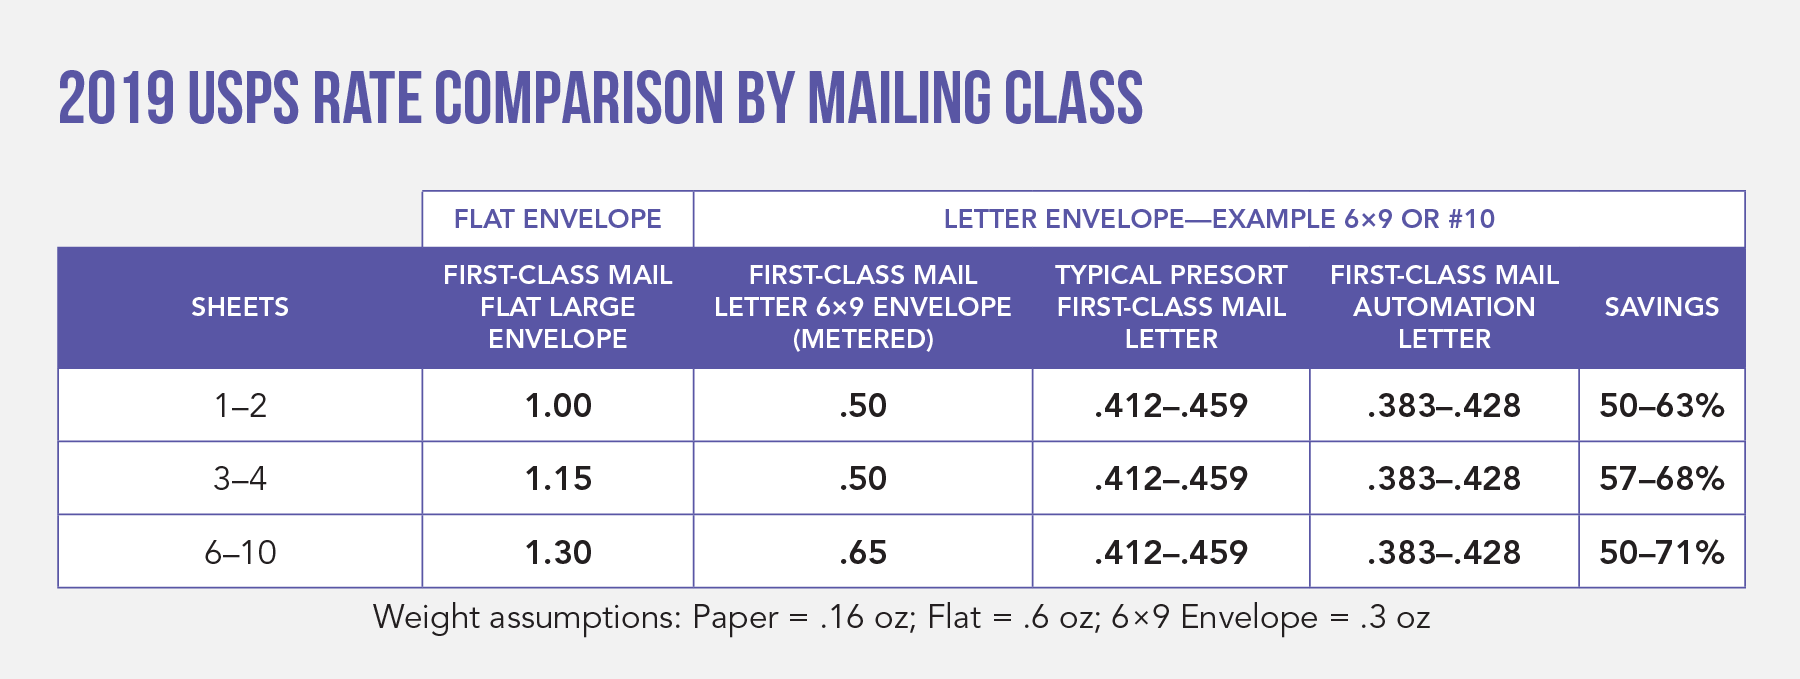 2019 USPS Rate Comparison by Mailing Class